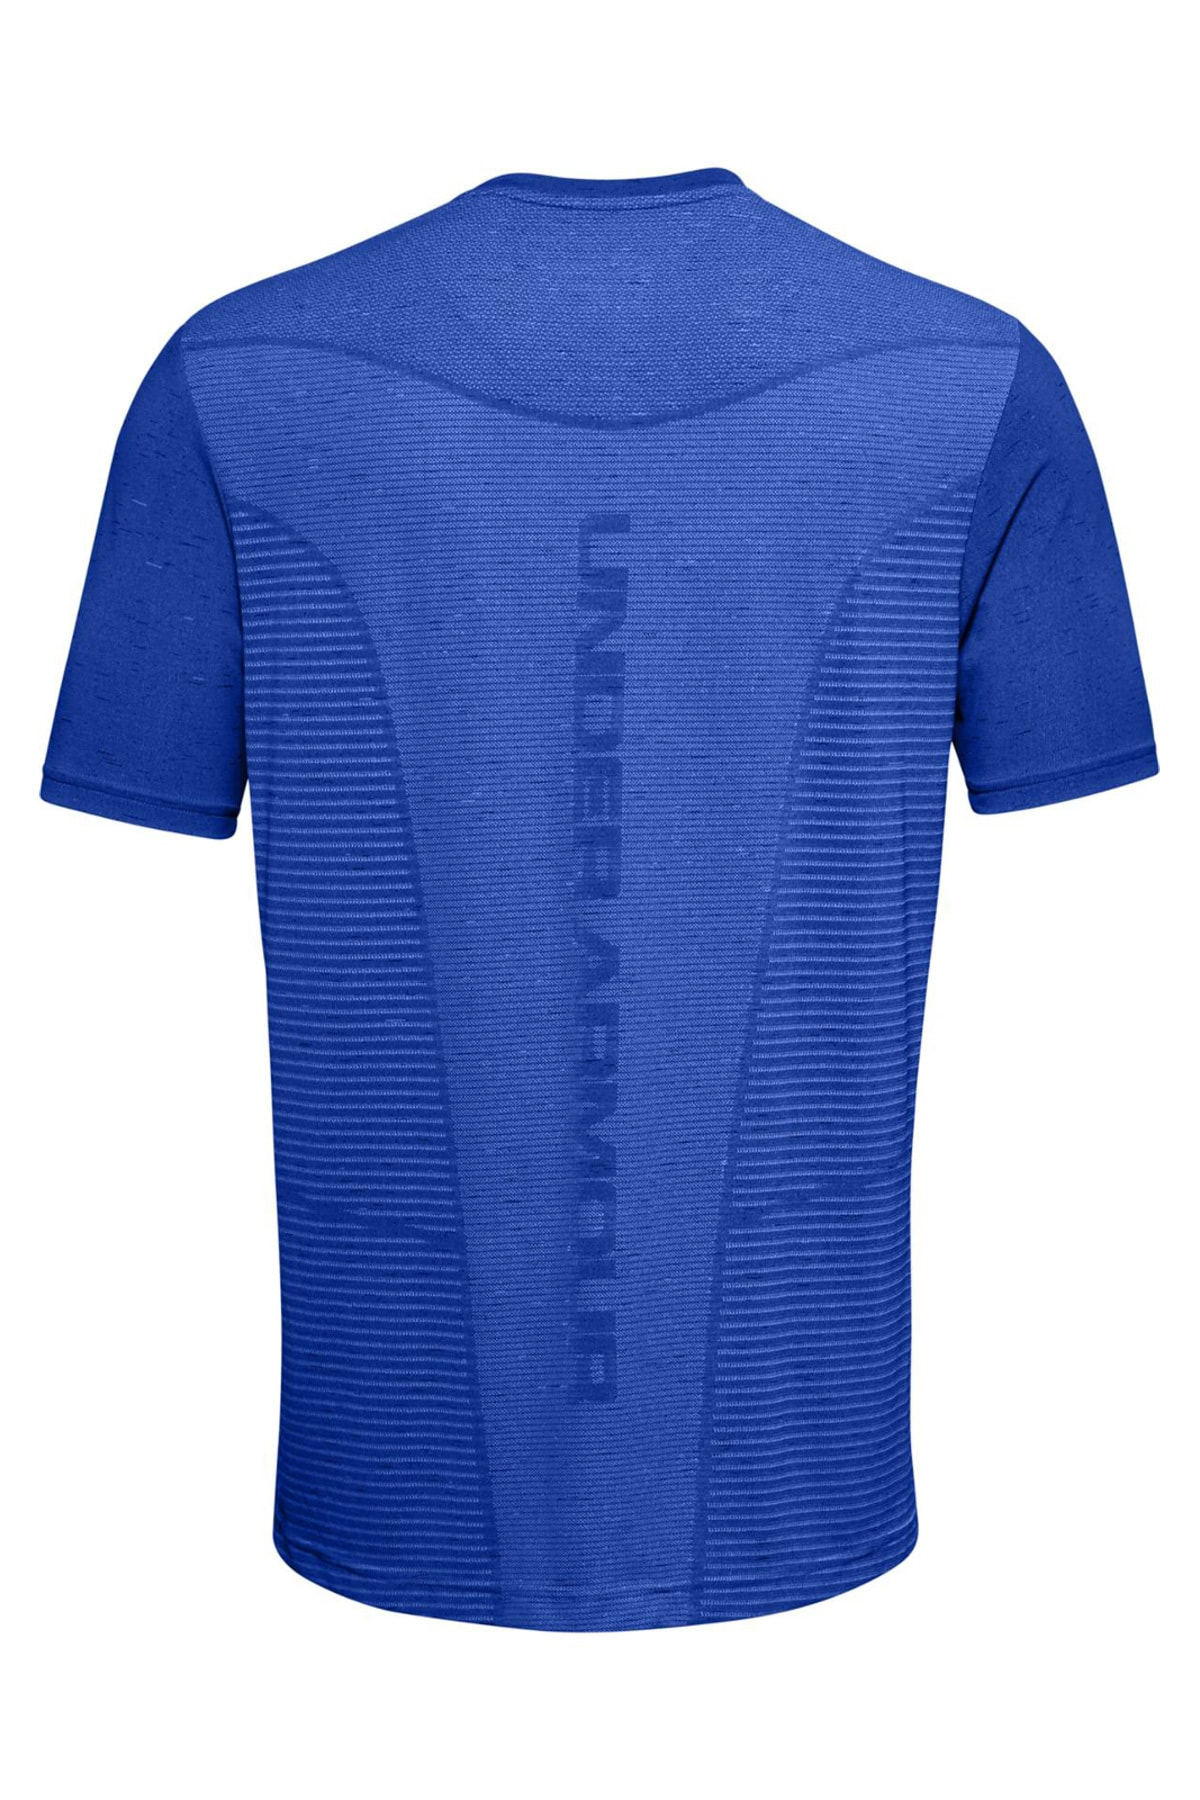 Under Armour Erkek Spor T-Shirt - Ua Seamless Logo Ss - 1356798-401 2